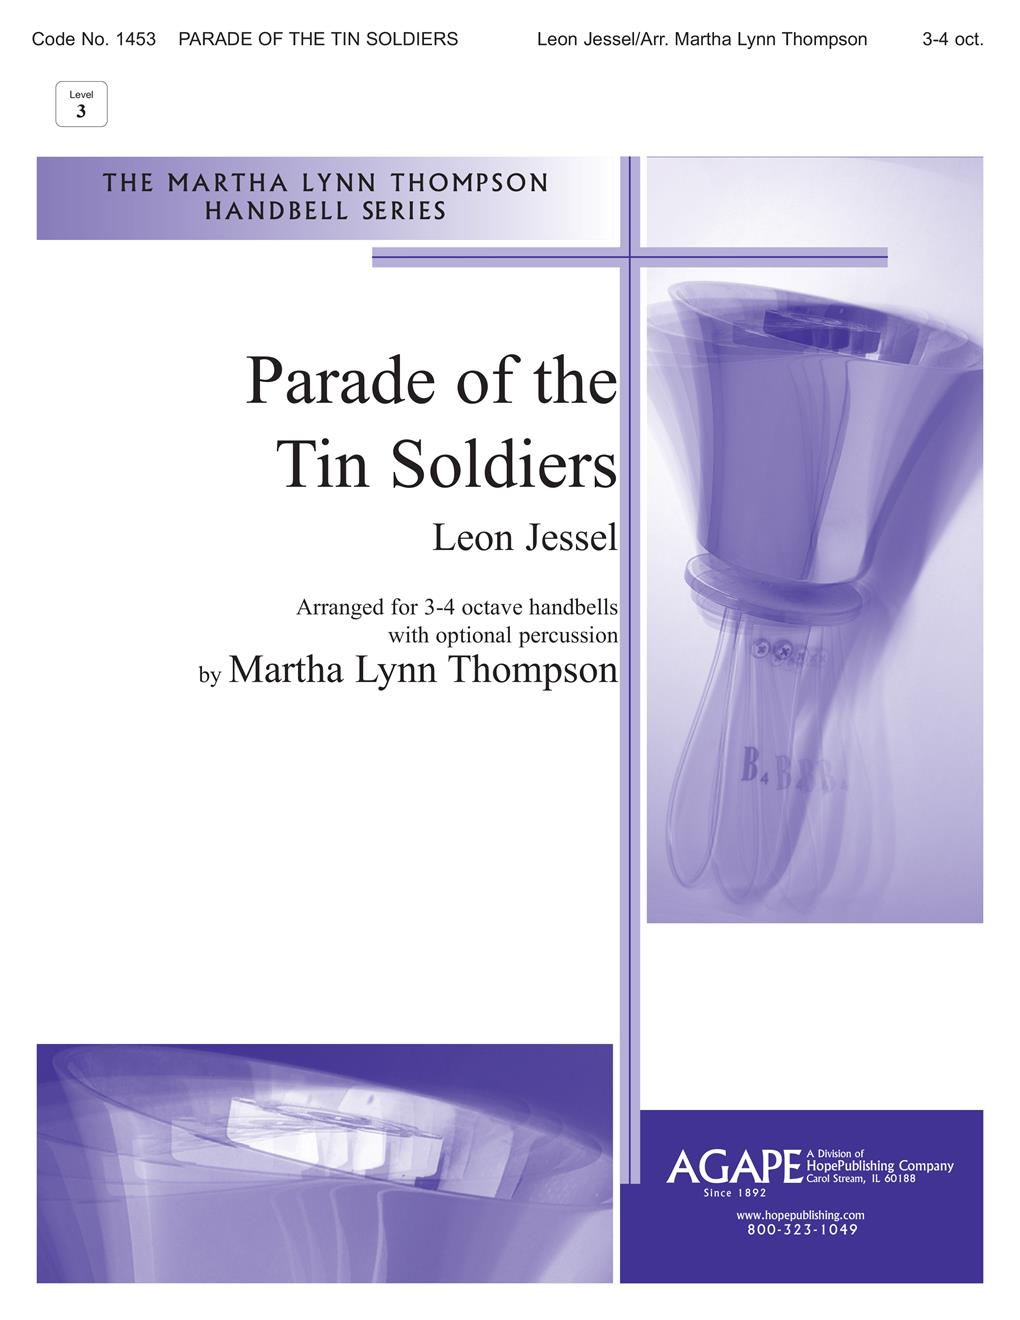 Parade of the Tin Soldiers - 3-4 Oct Cover Image